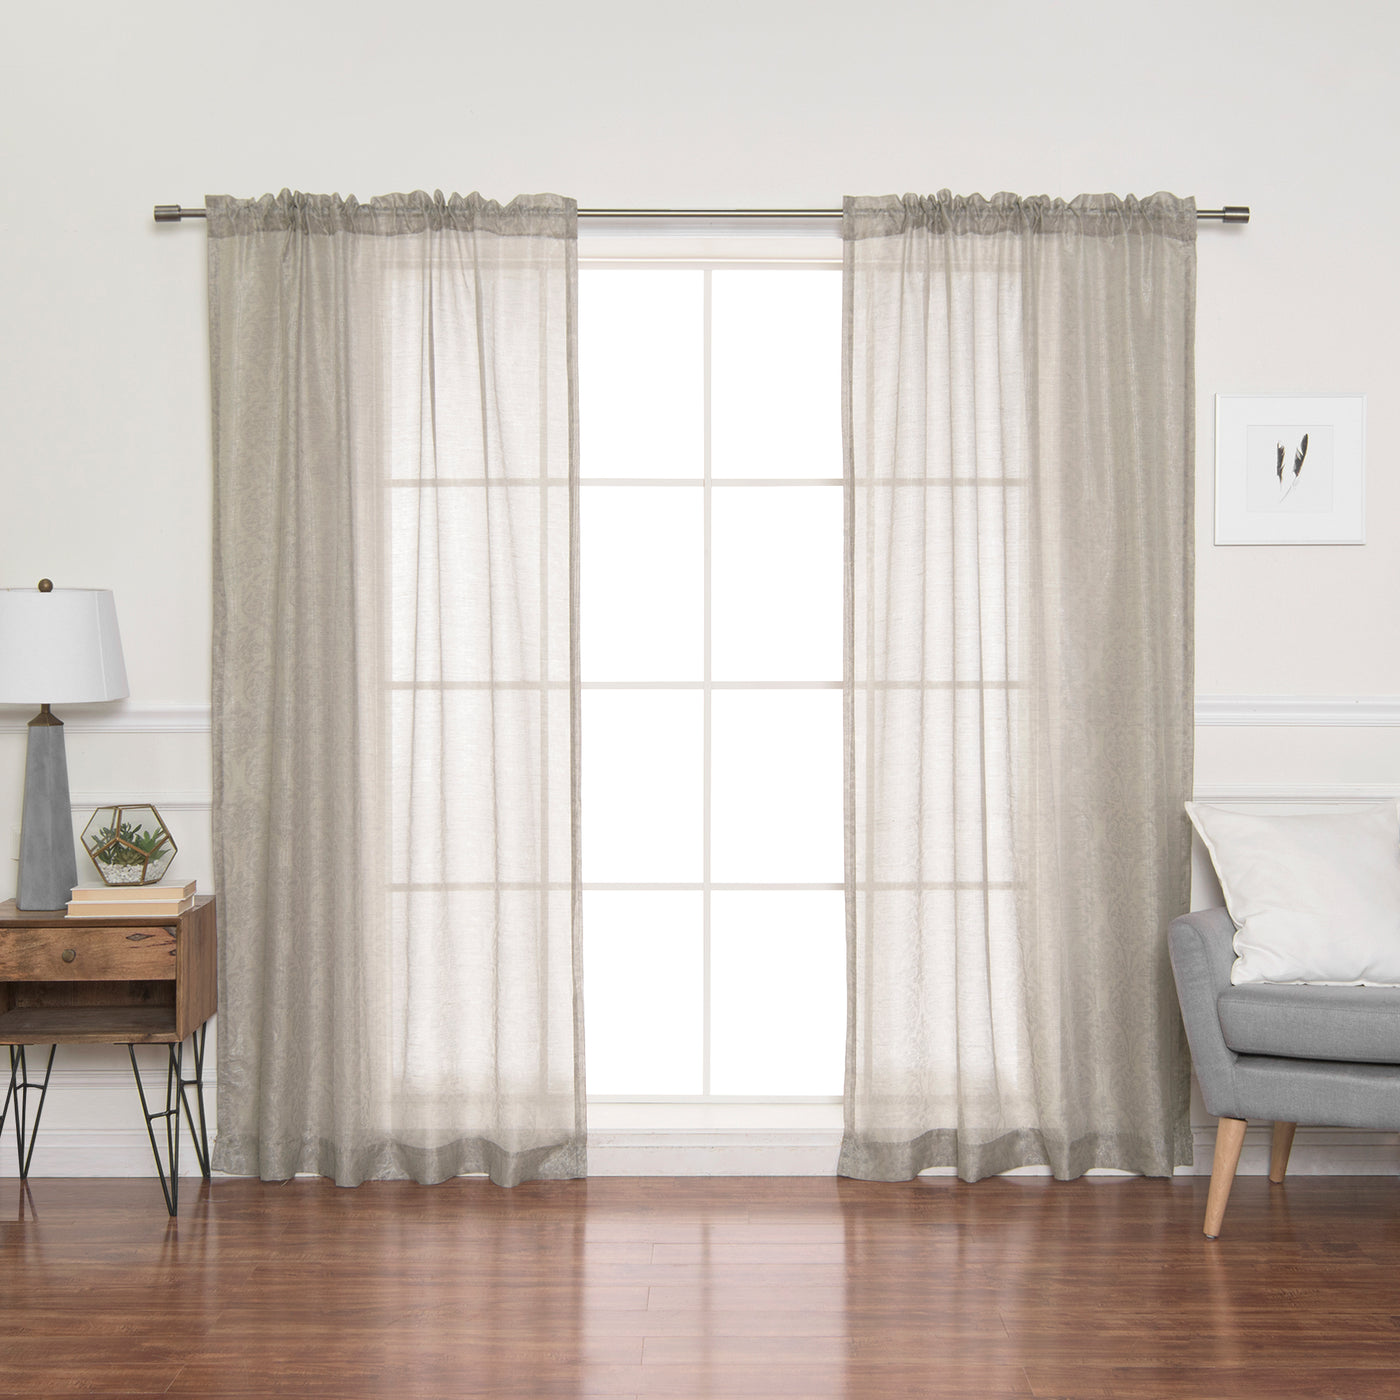 Sheer Damask Venice Curtains